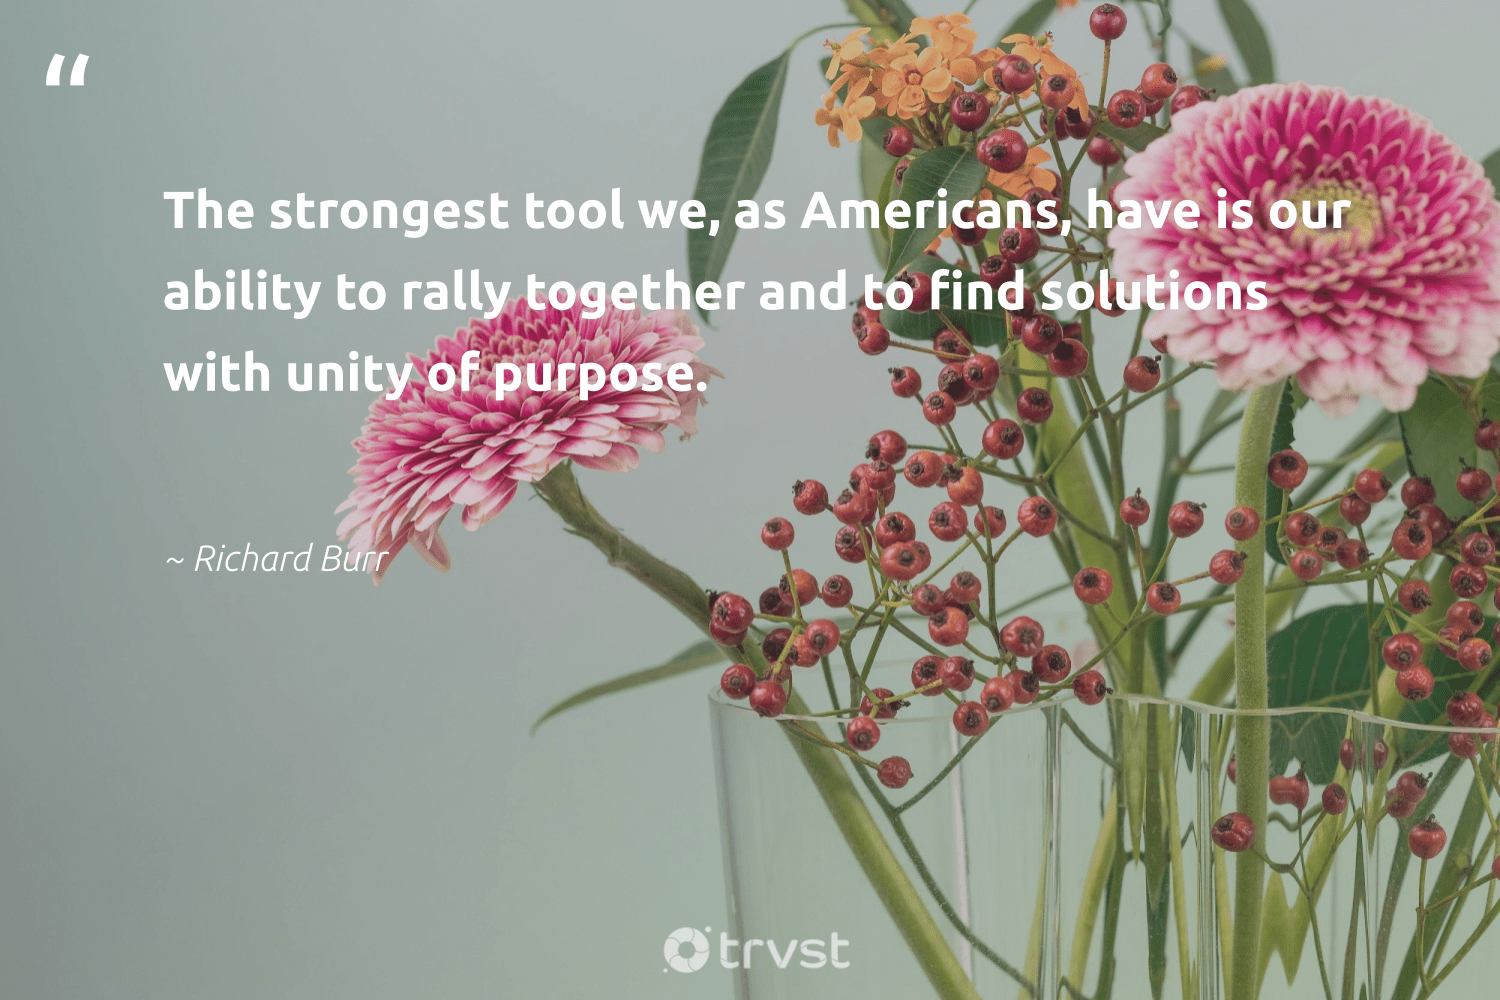 """""""The strongest tool we, as Americans, have is our ability to rally together and to find solutions with unity of purpose.""""  - Richard Burr #trvst #quotes #purpose #findingpupose #health #nevergiveup #planetearthfirst #purposedriven #mindset #begreat #thinkgreen #findpurpose"""